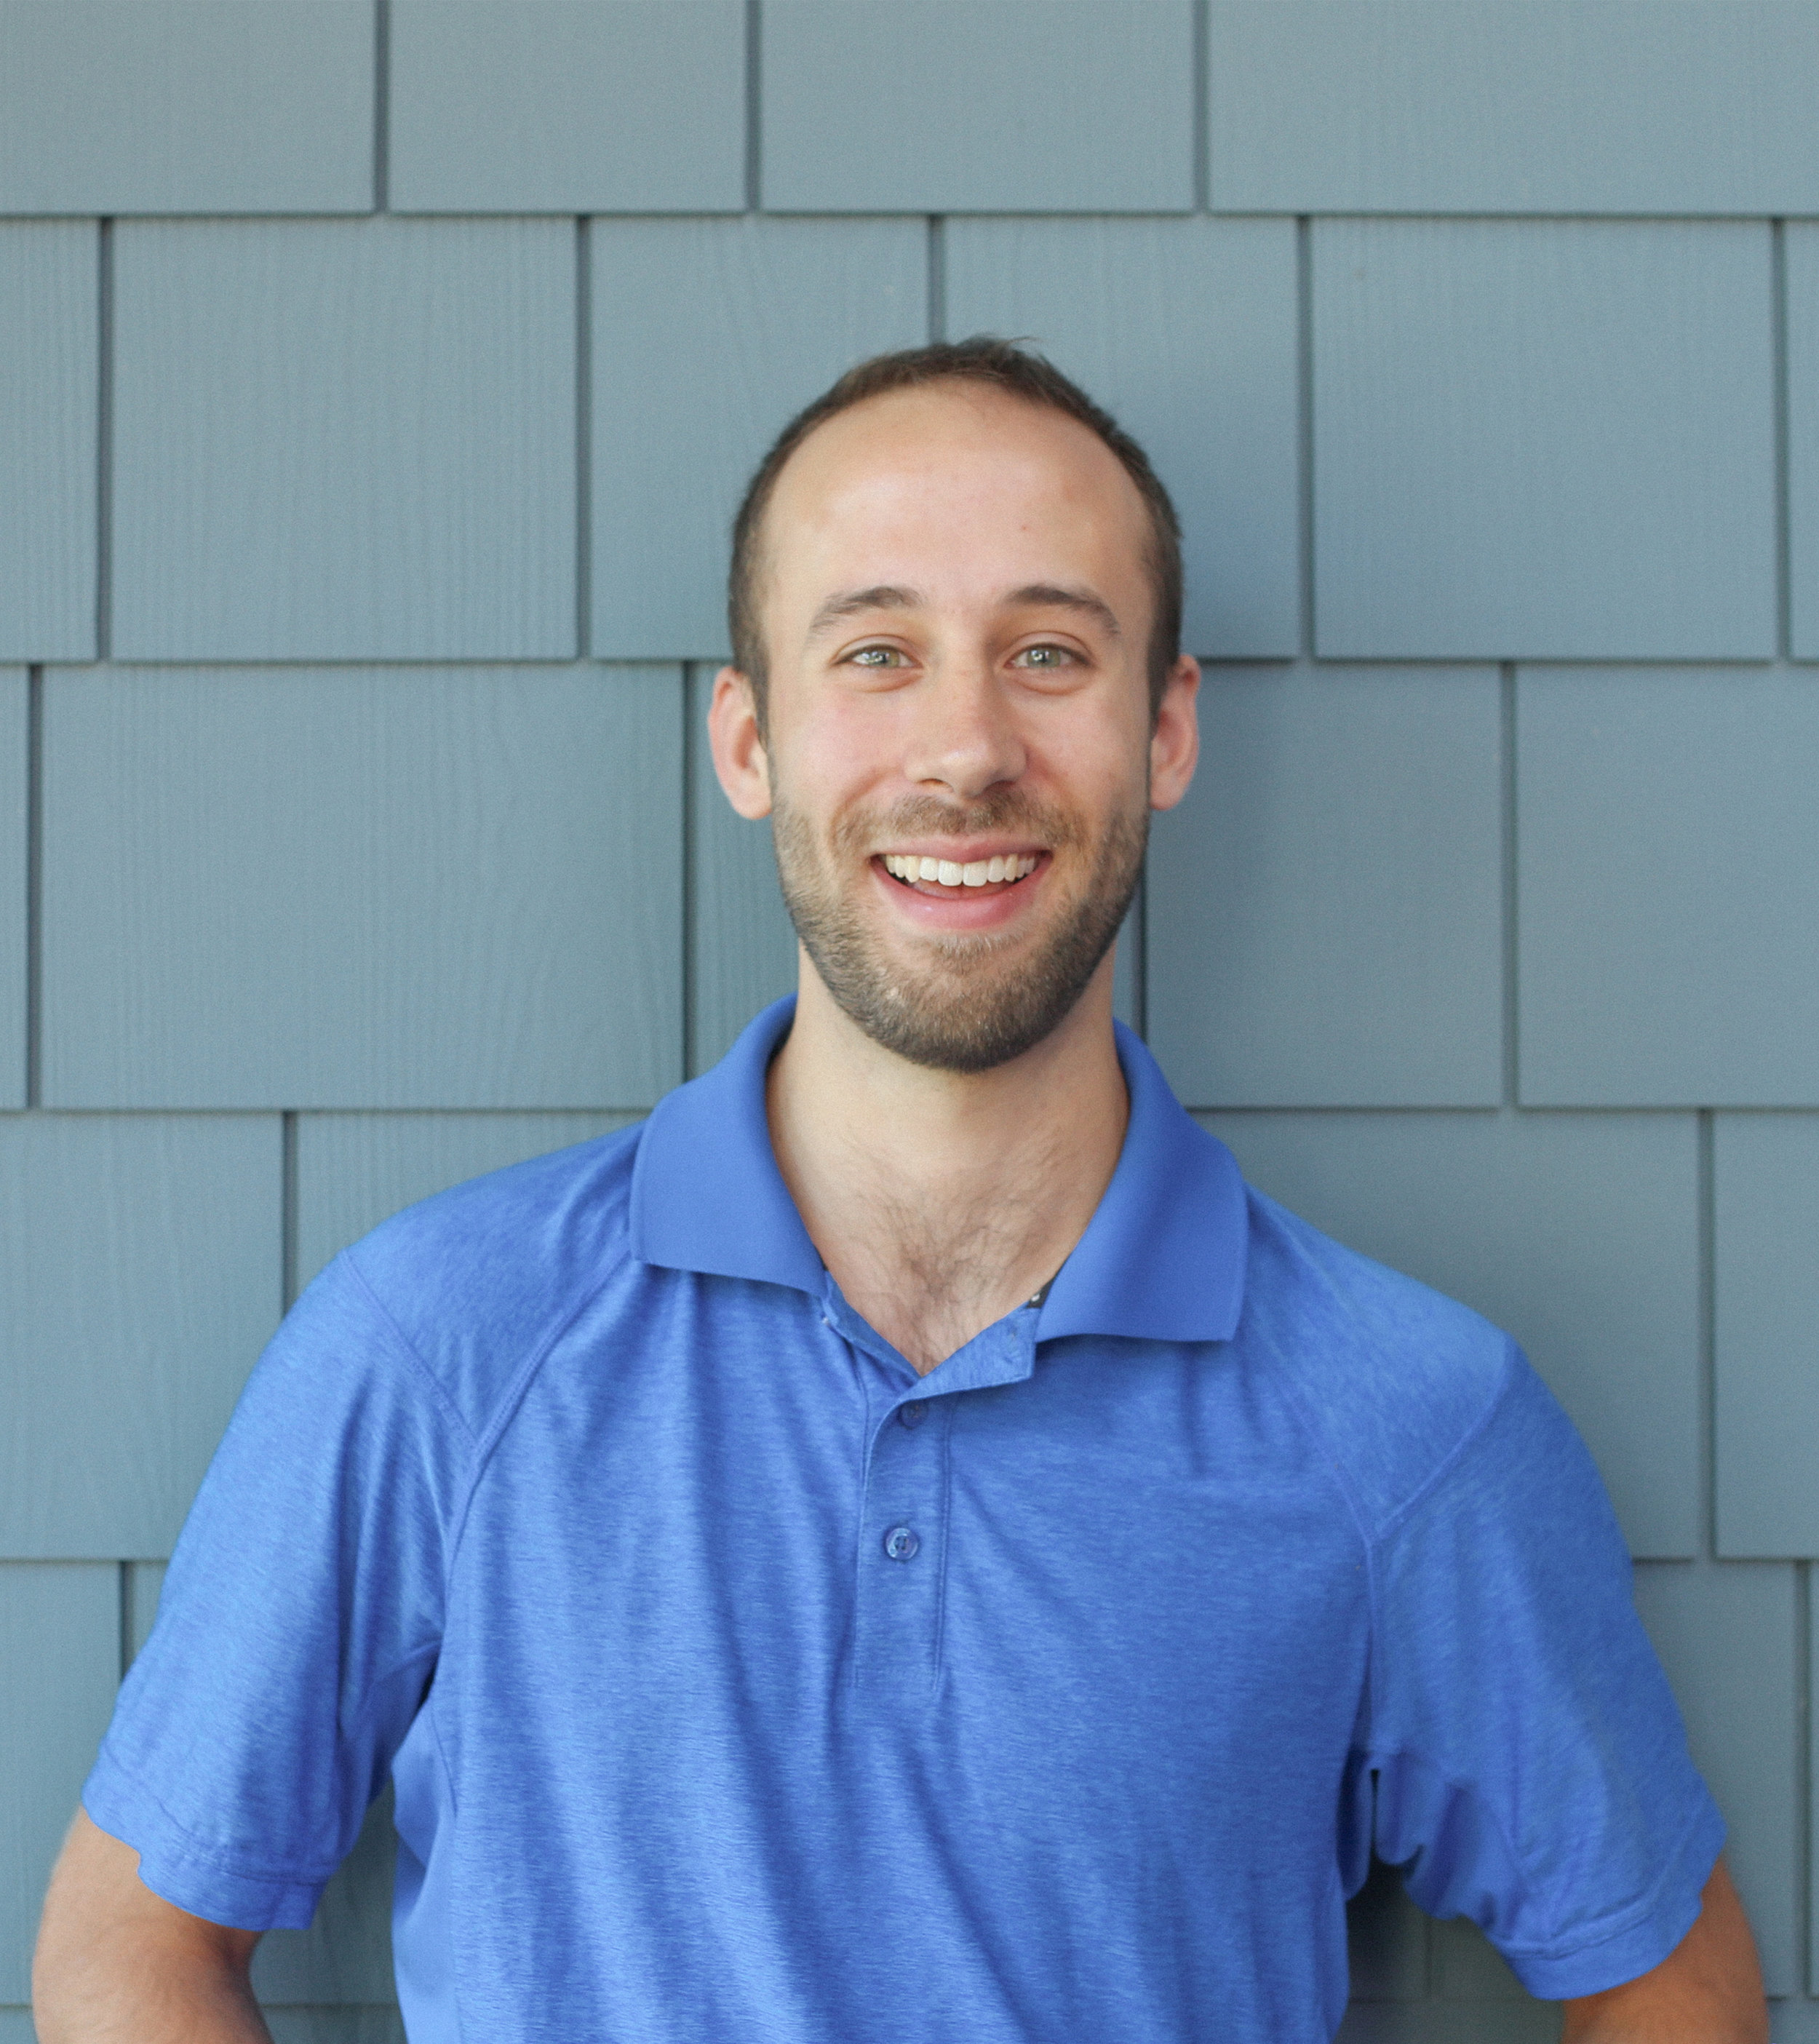 Blake ClarkePhysiotherapist - Prior to receiving his Masters in Science of Physical Therapy from U of A, Blake has also completed his BSC from the University of Victoria. Keen on vestibular therapy, manual treatment and exercise prescription, Blake takes a hands-on approach – his gears grind at passive methods!Aiming to identify what it is that is limiting his patients, whether that be walking or returning to sport, Blake believes that a tailored plan and manual therapy are absolutely key to producing meaningful results. This means checking in with them regularly and being focused on connecting with the patient beyond their injury.